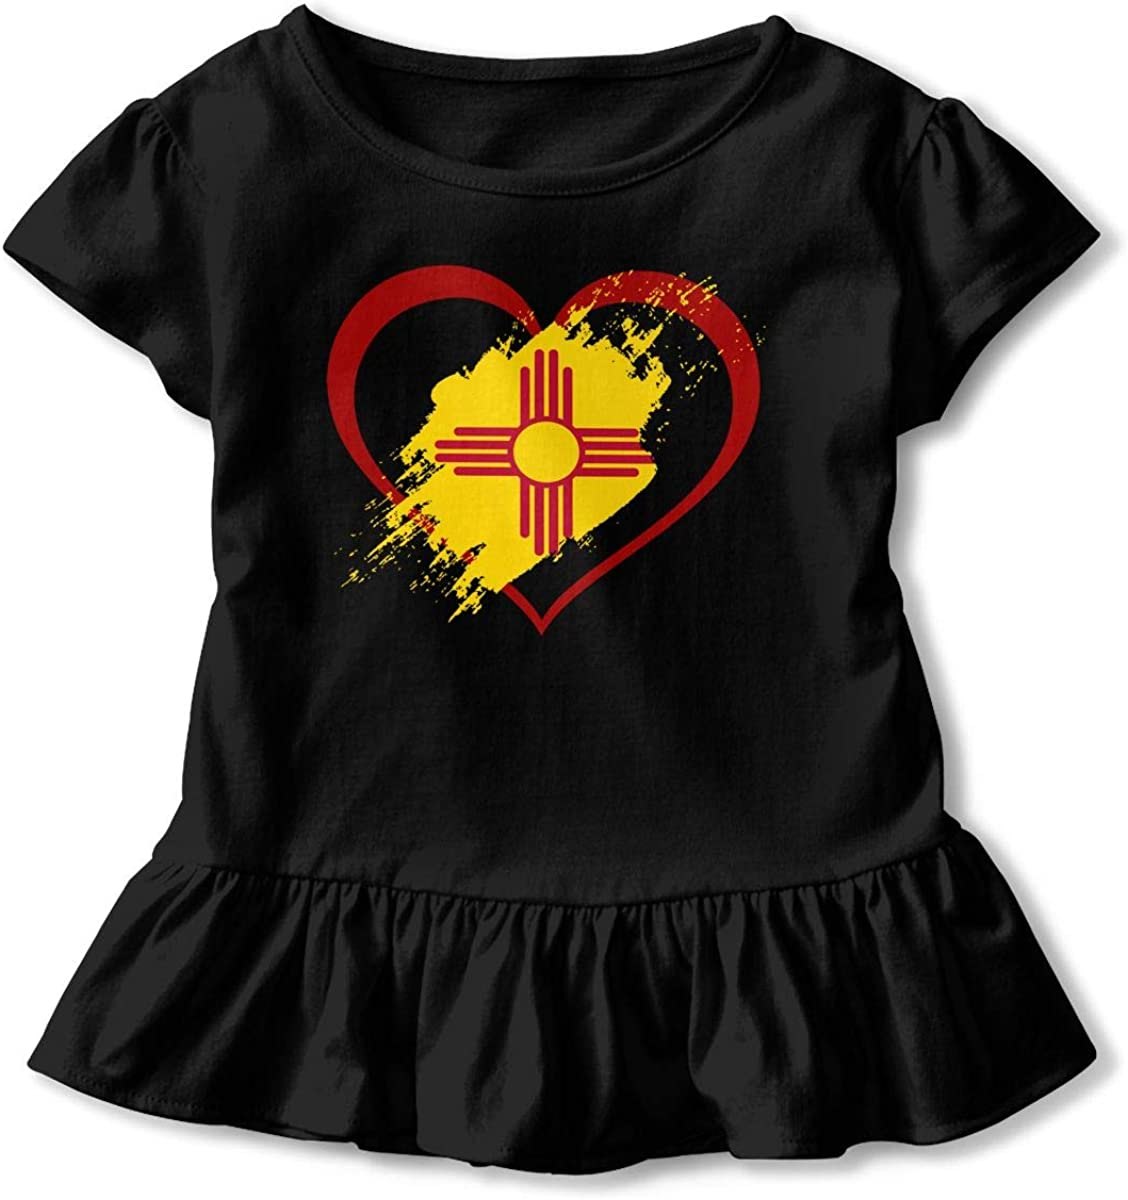 Kcloer24 Unisex Toddler New Mexico Flag Heart Shape Personality Short Sleeve Ruffles T-Shirt Summer Clothes for 2-6 Years Old